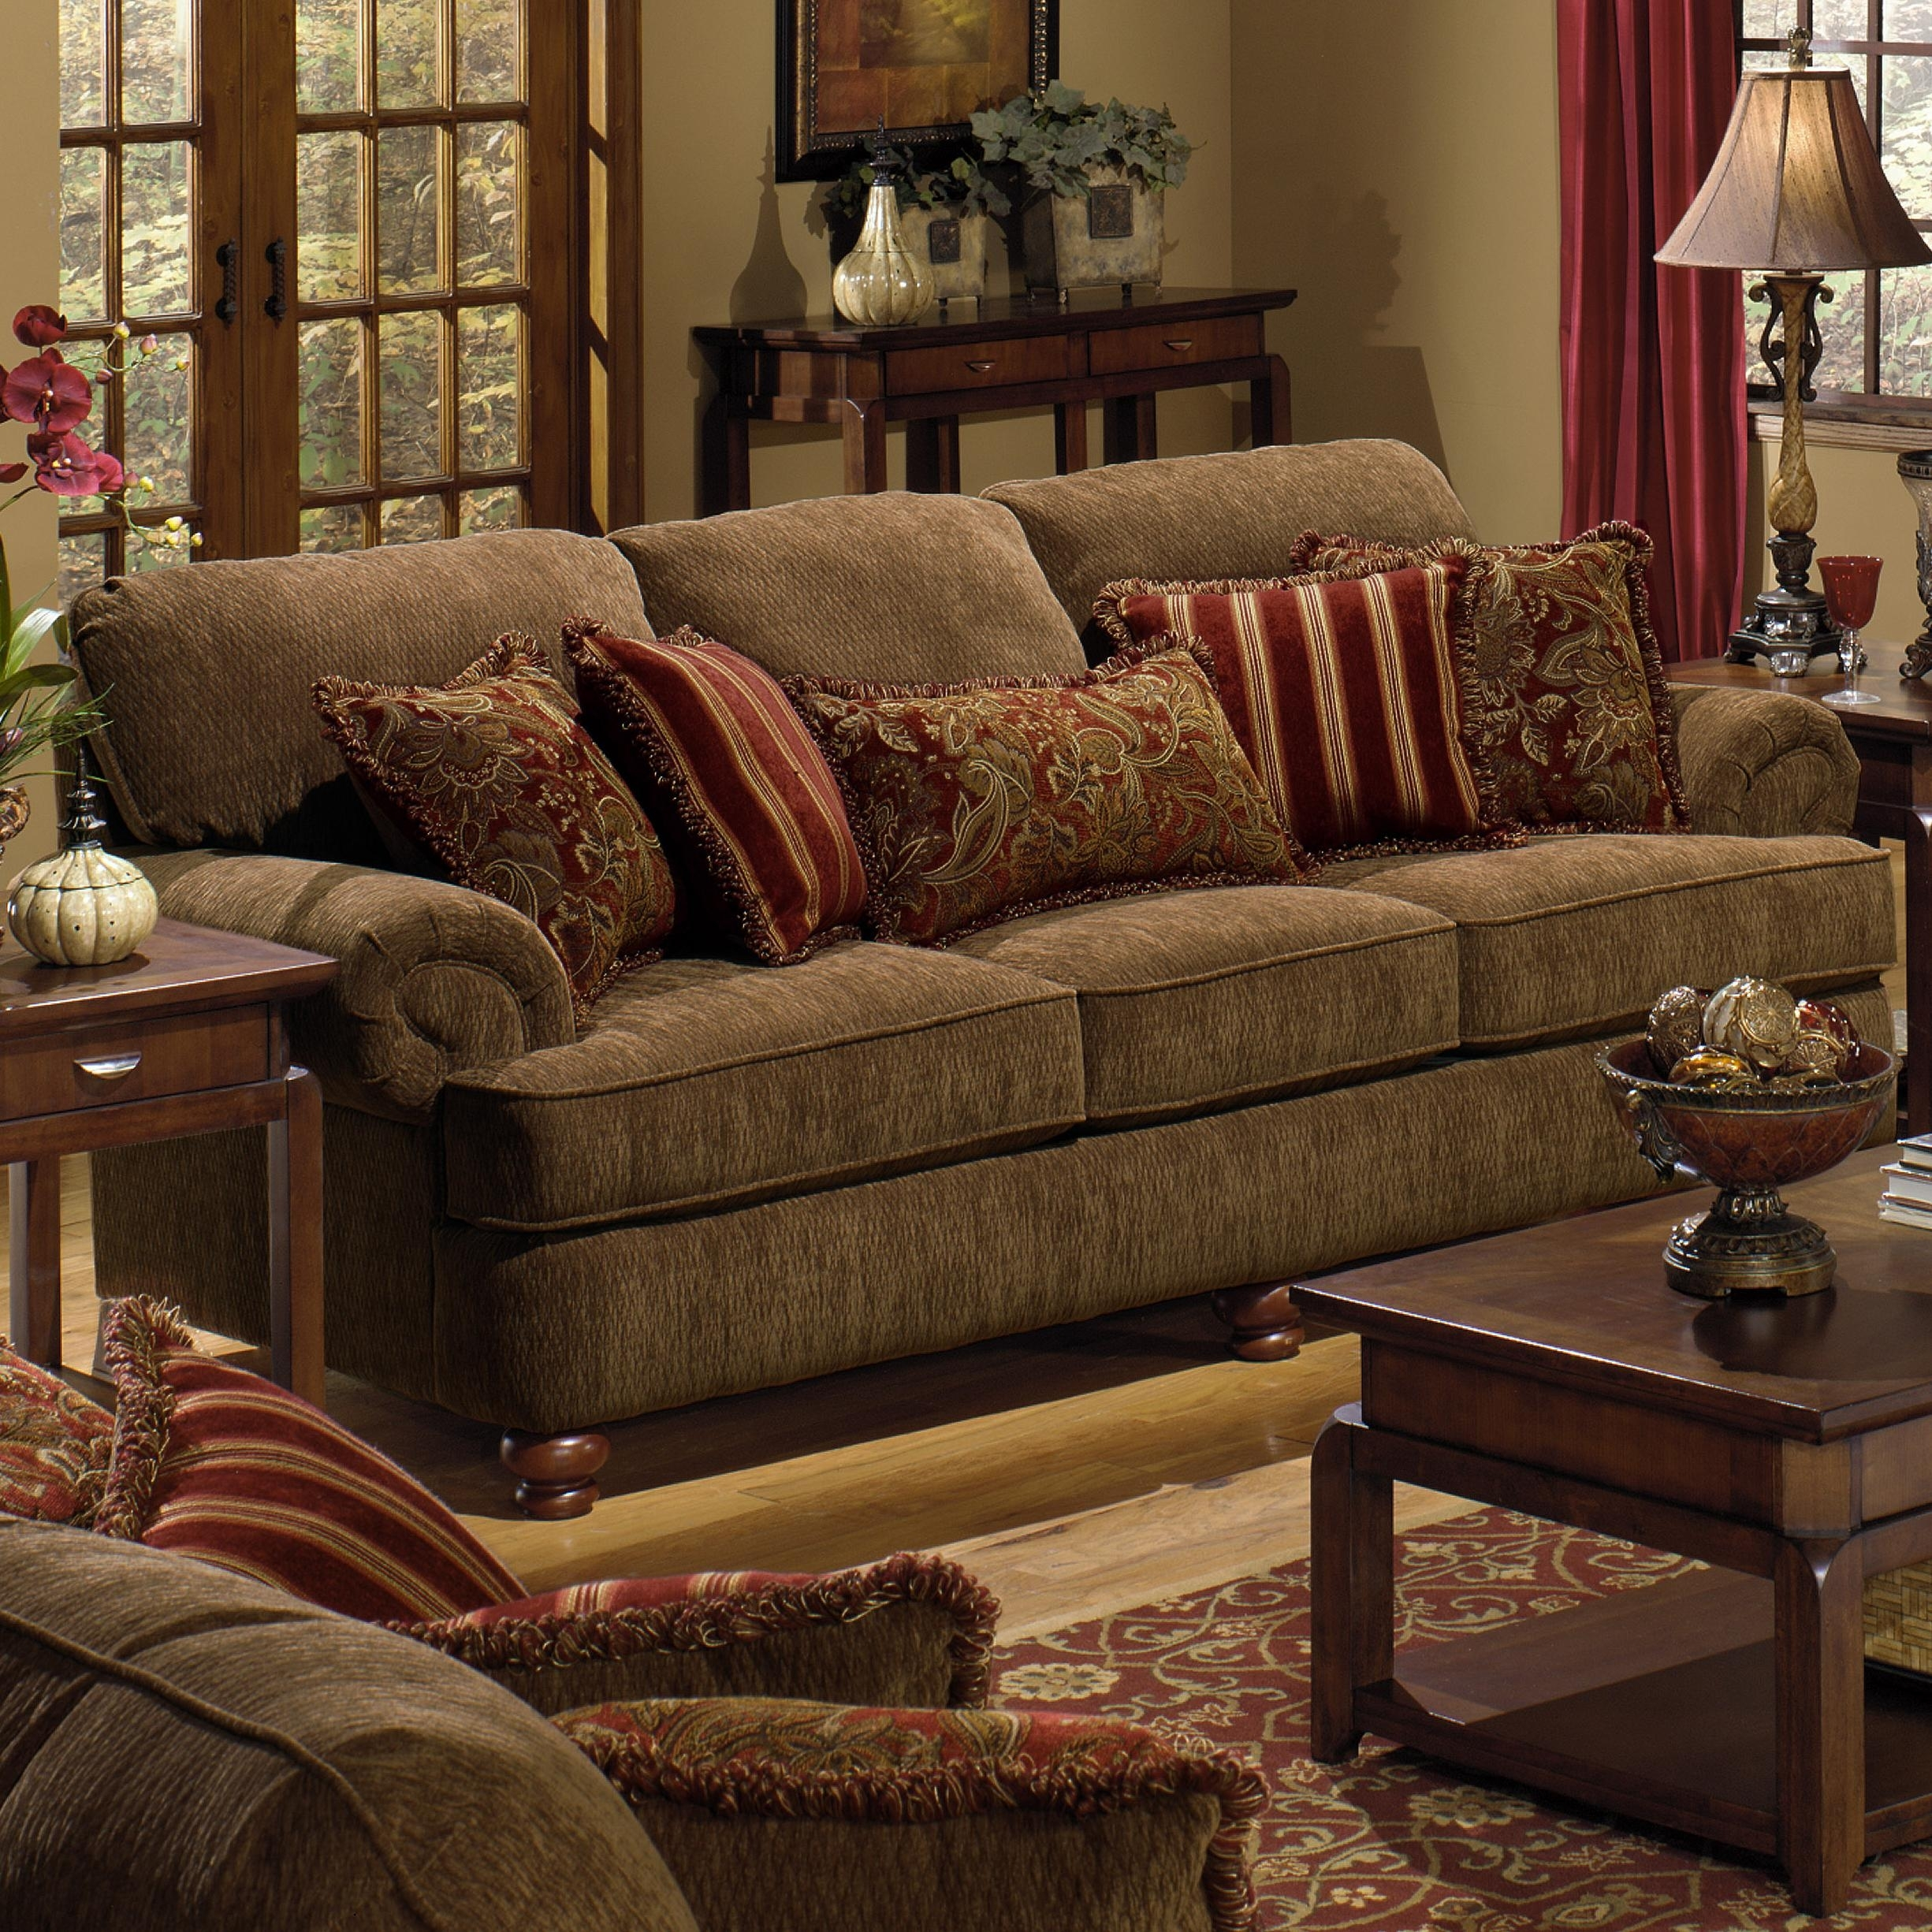 Living Room : Decorative Pillows For Sofa Cheap Decorative Cushions For Sofas With Oversized Pillows (Image 4 of 10)